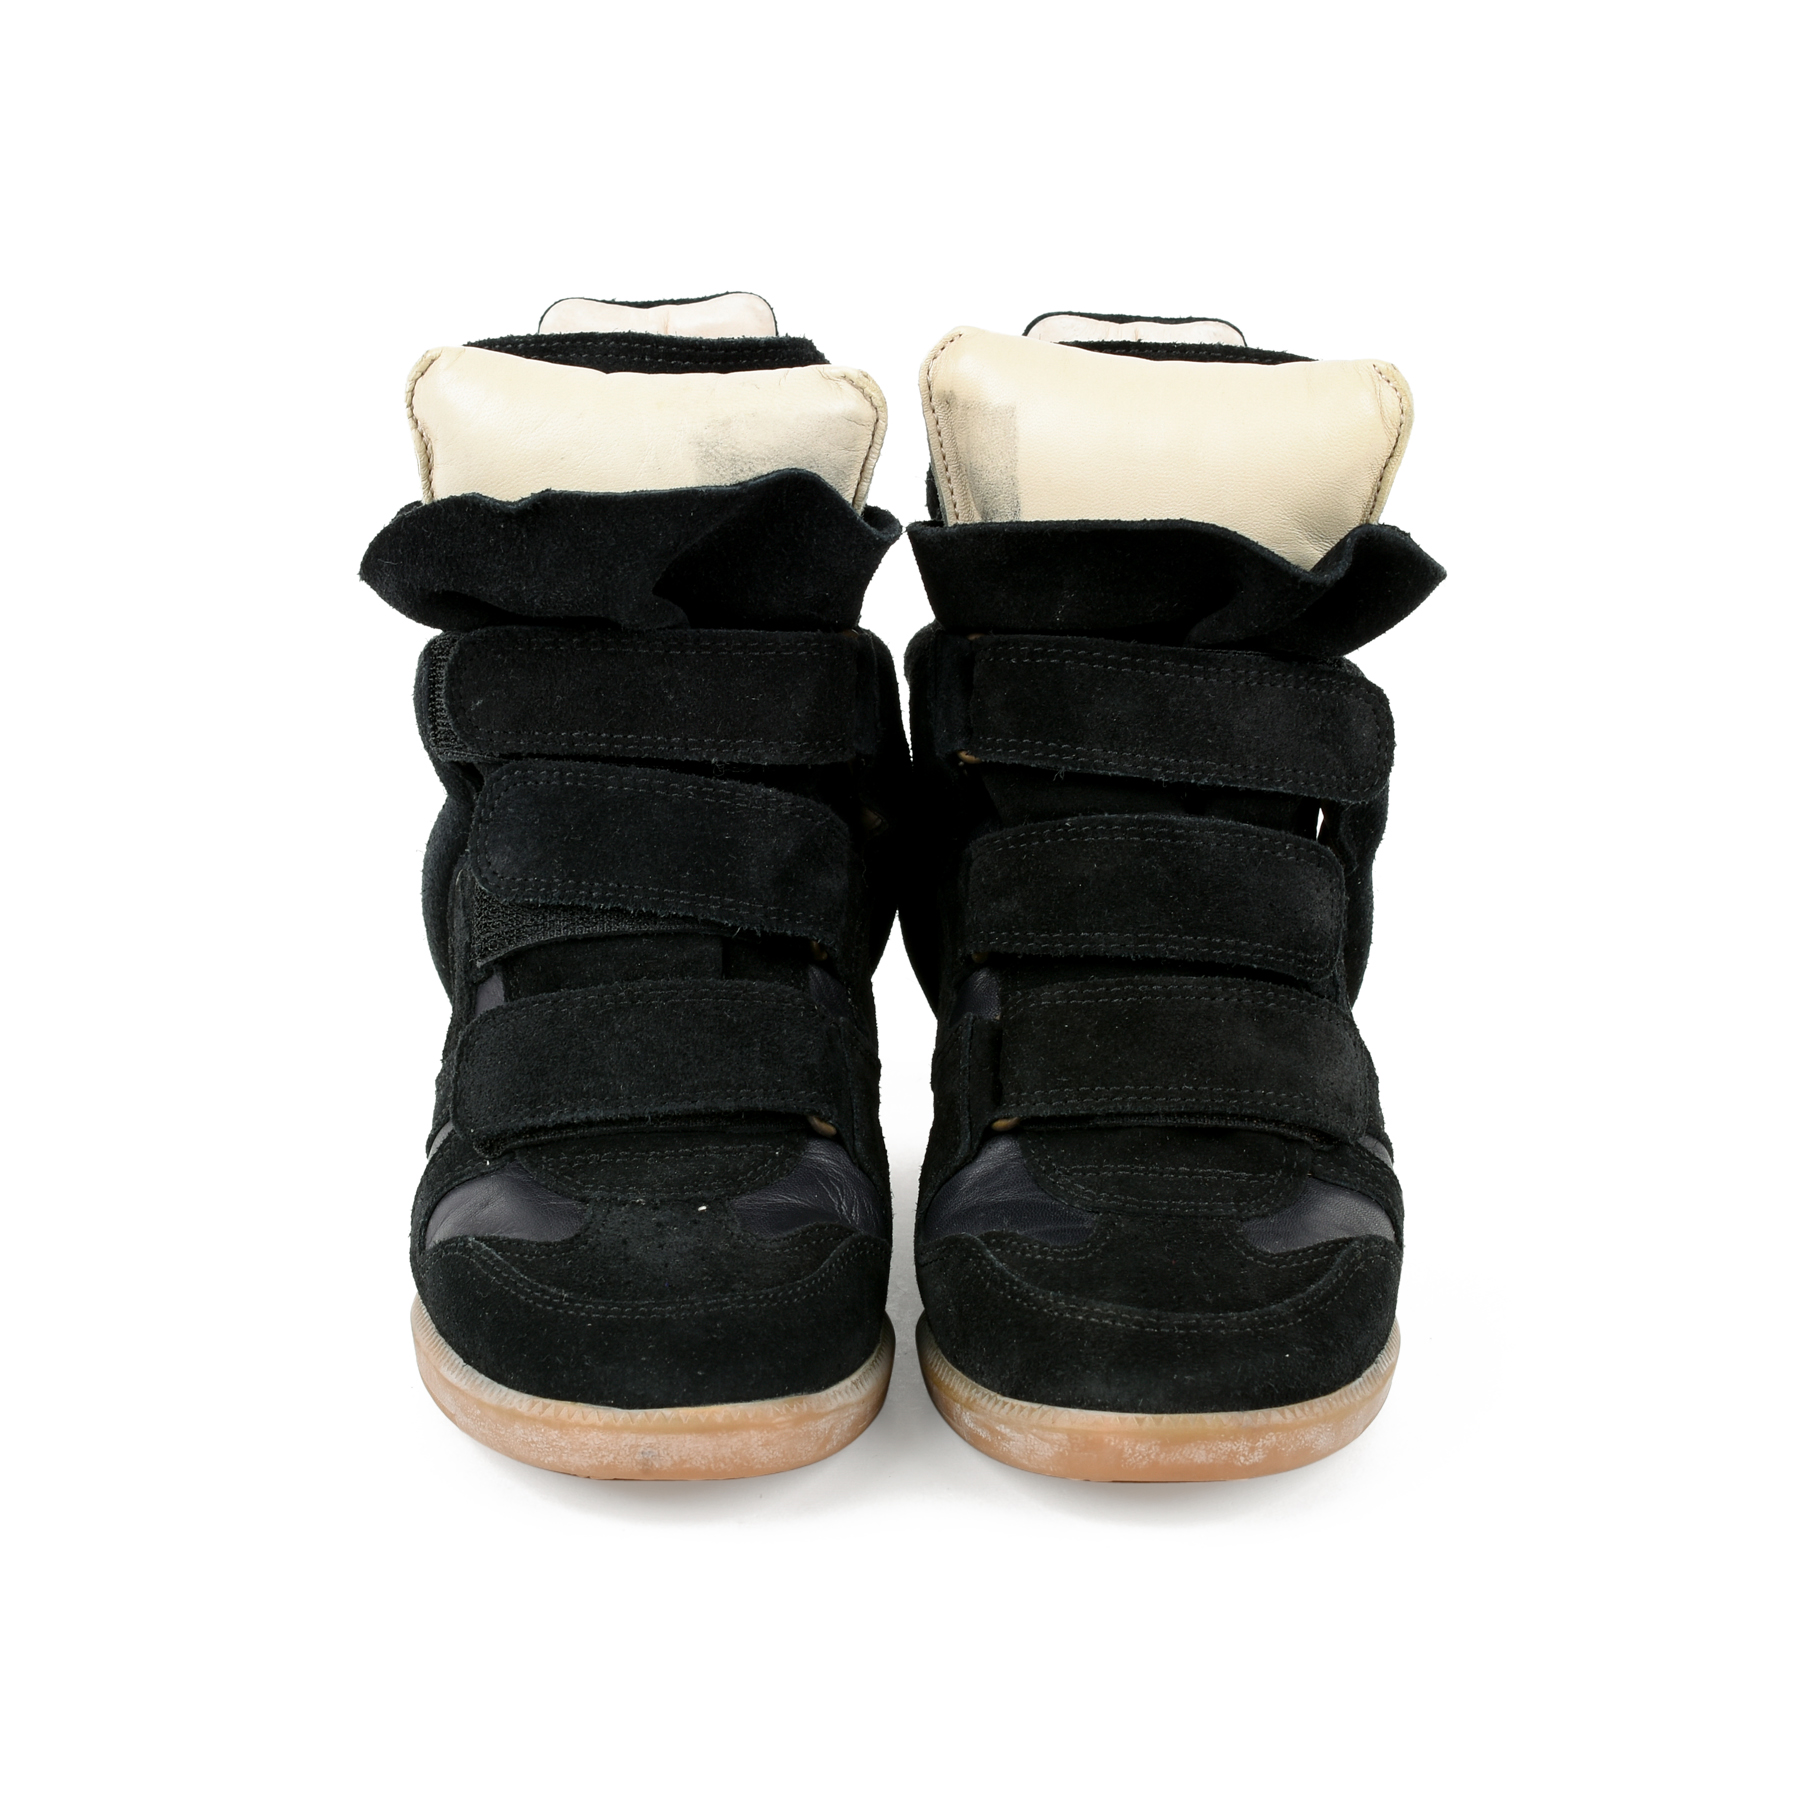 885df2441ed2 Authentic Second Hand Isabel Marant Bekett Wedge Sneakers (PSS-235-00103) -  THE FIFTH COLLECTION